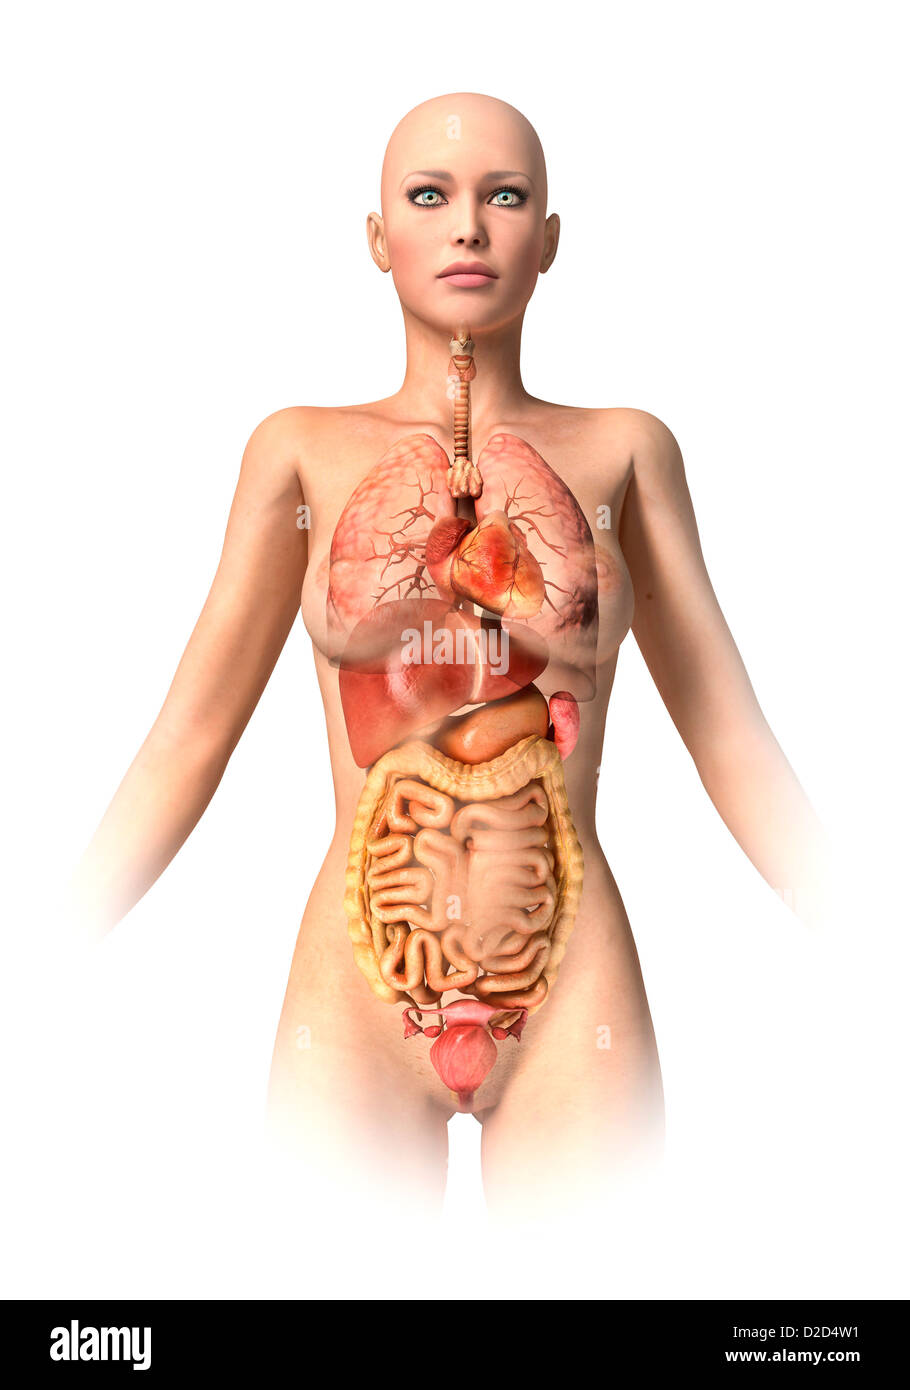 Female Anatomy Stock Photos Female Anatomy Stock Images Alamy